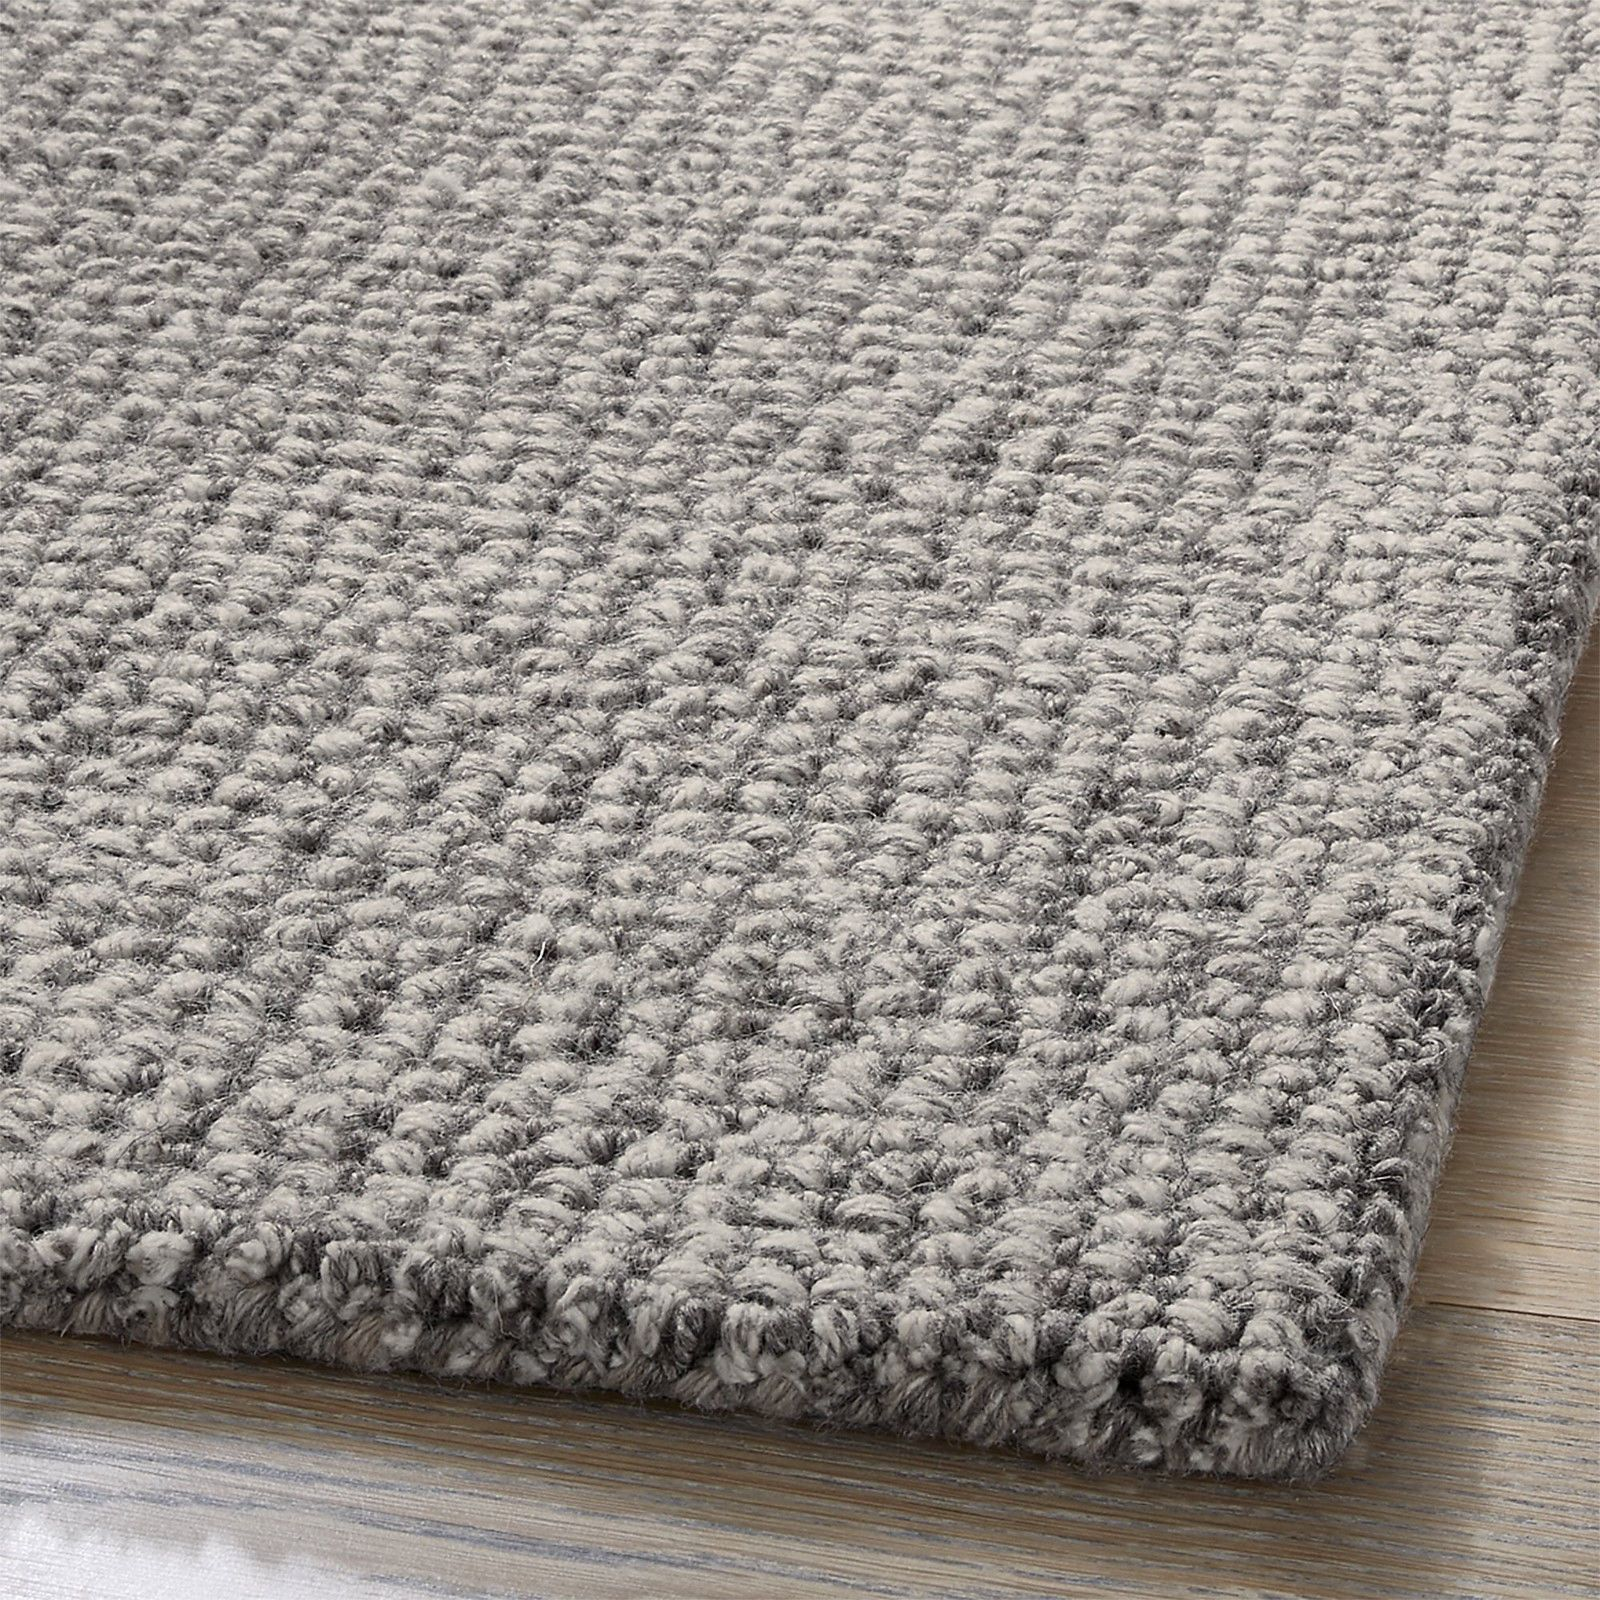 Hand Tufted With A Uniform Loop Pile This Dark Grey Rug